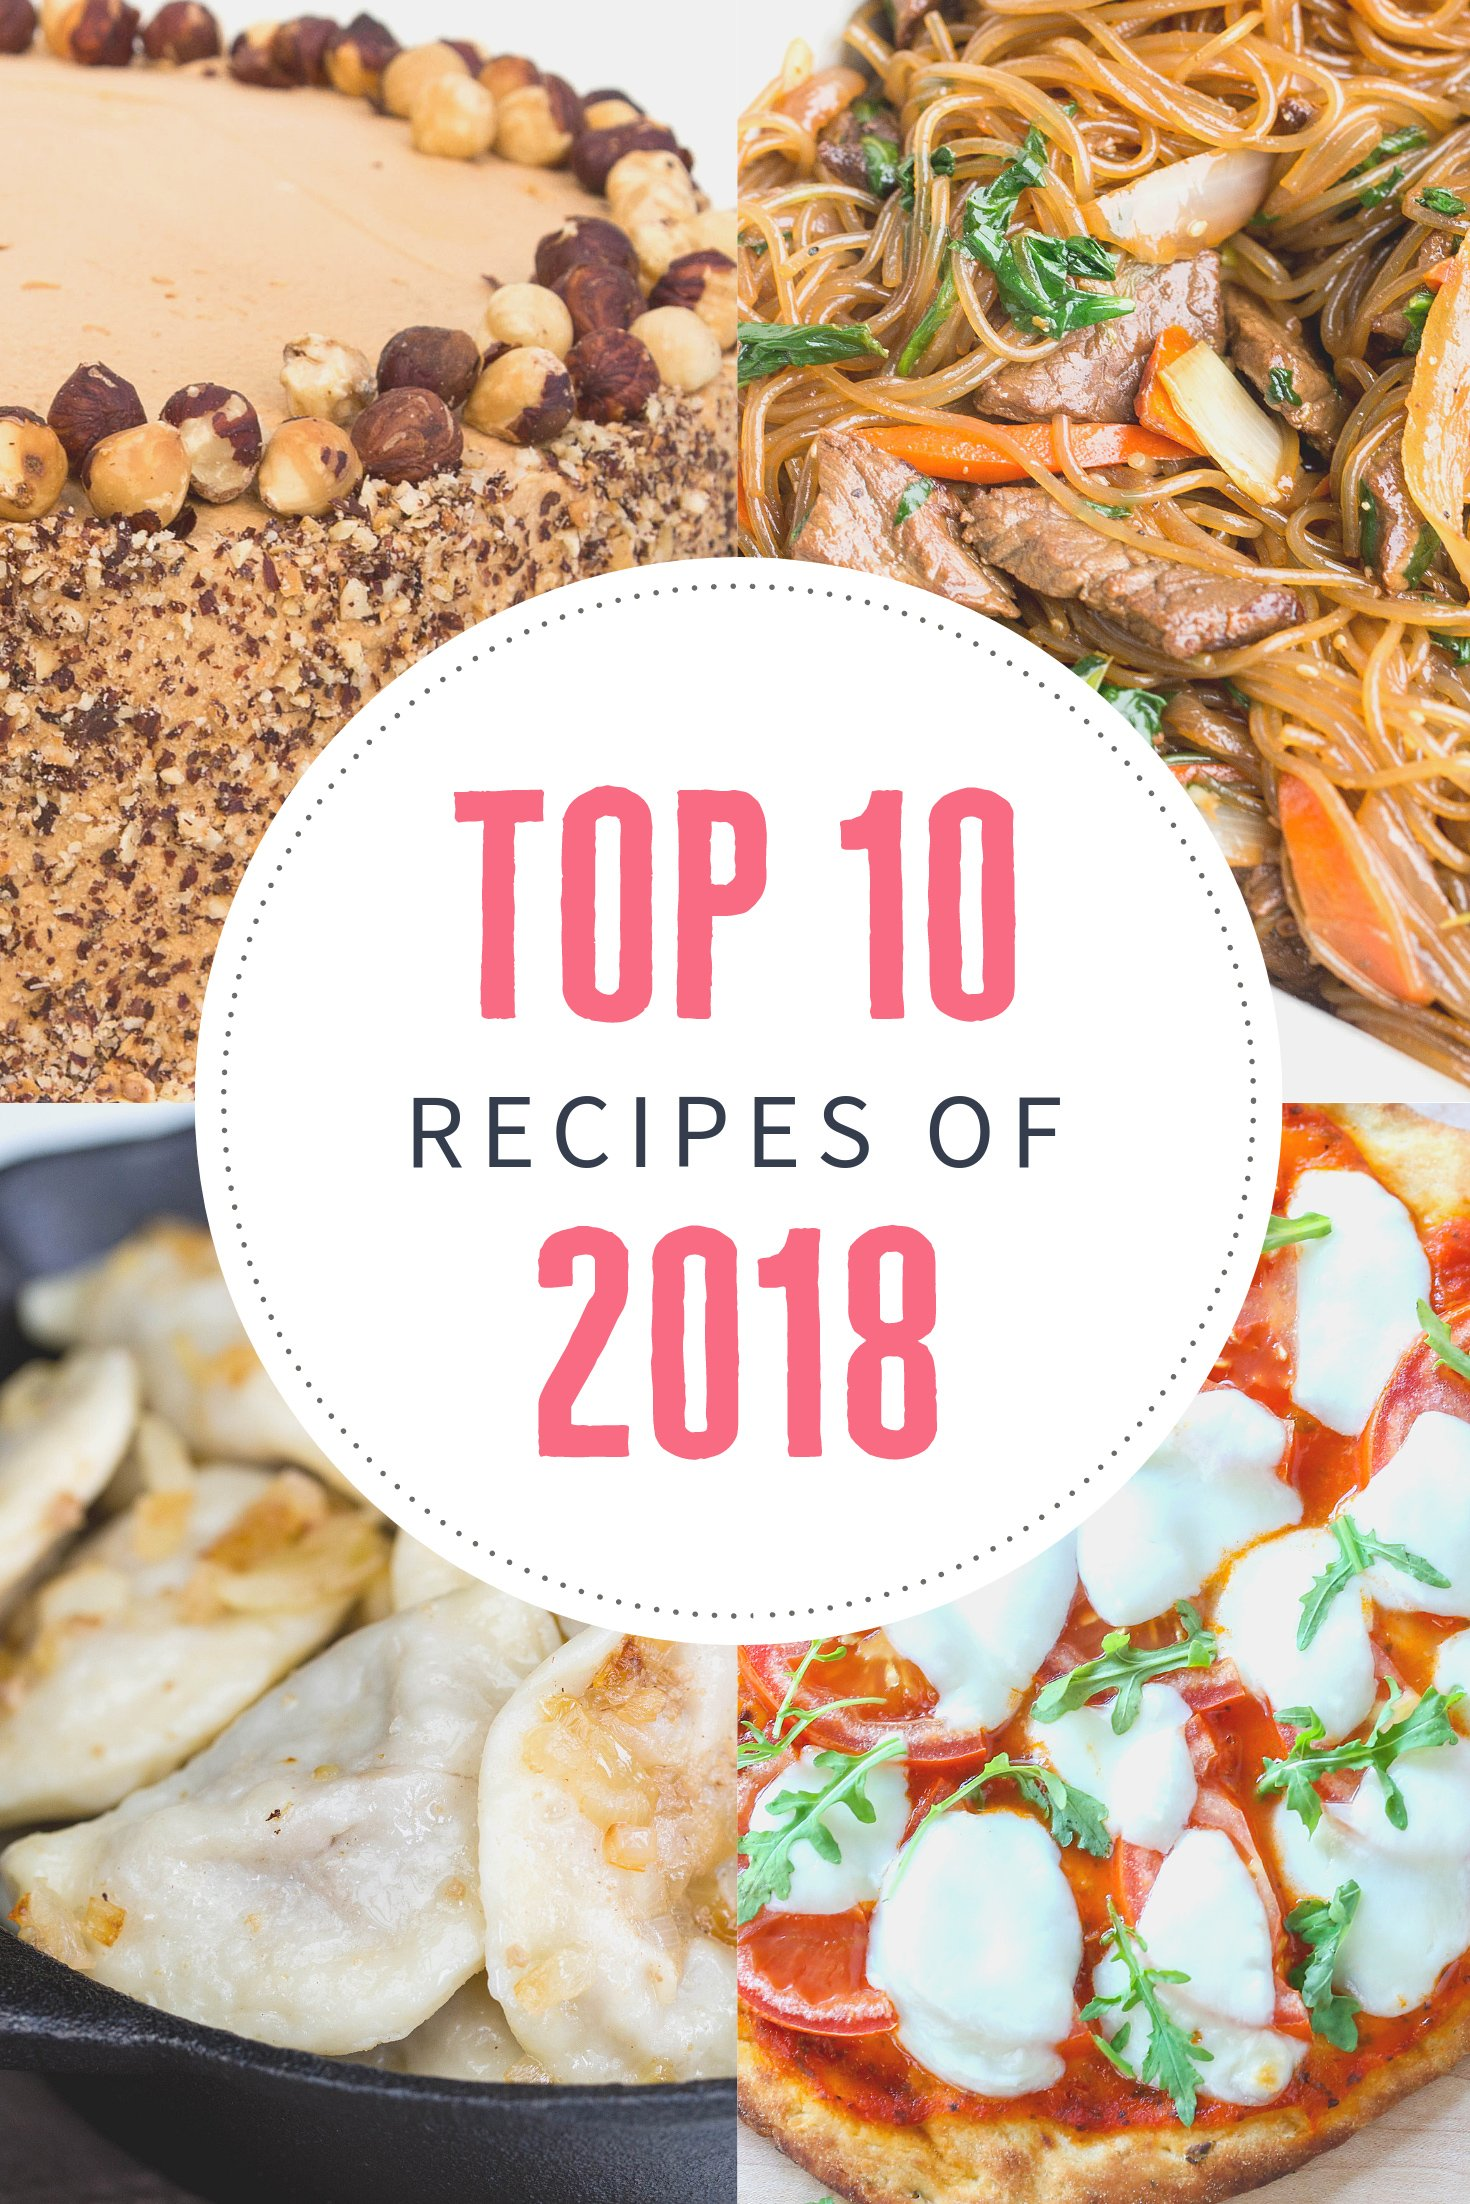 Top 10 momsdish recipes of 2018